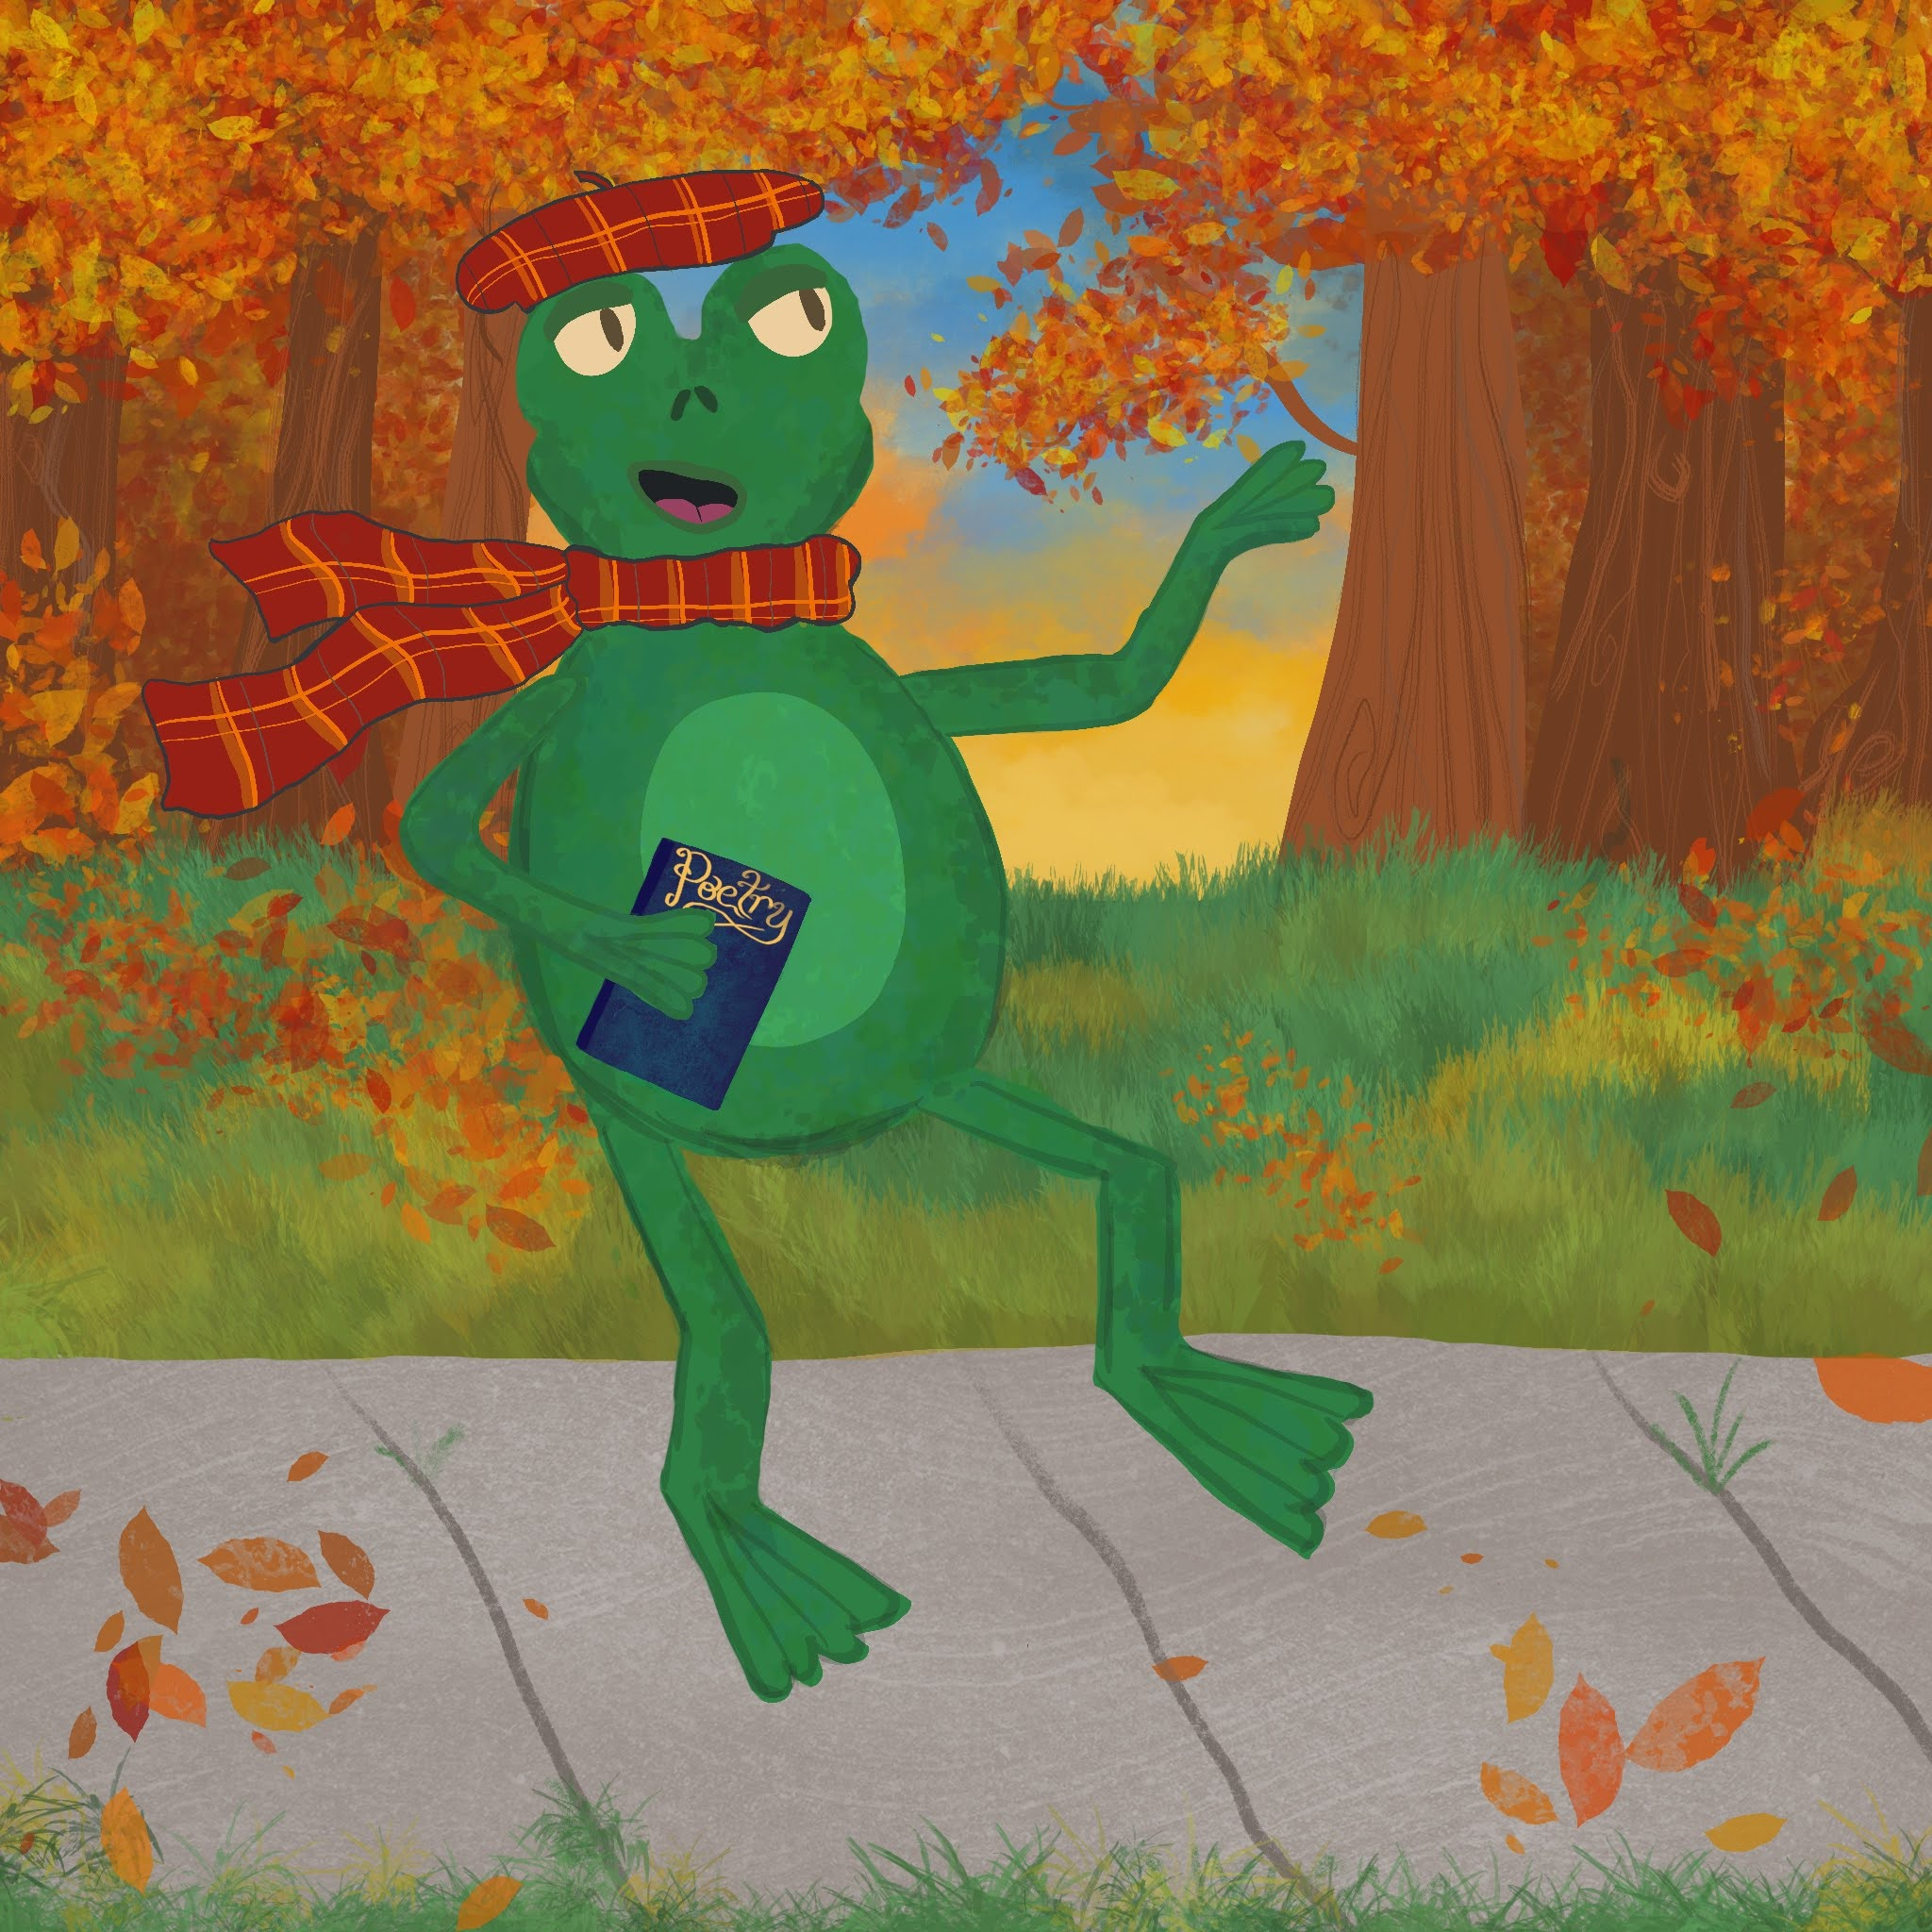 Frog on an Autumn Walk, 2020